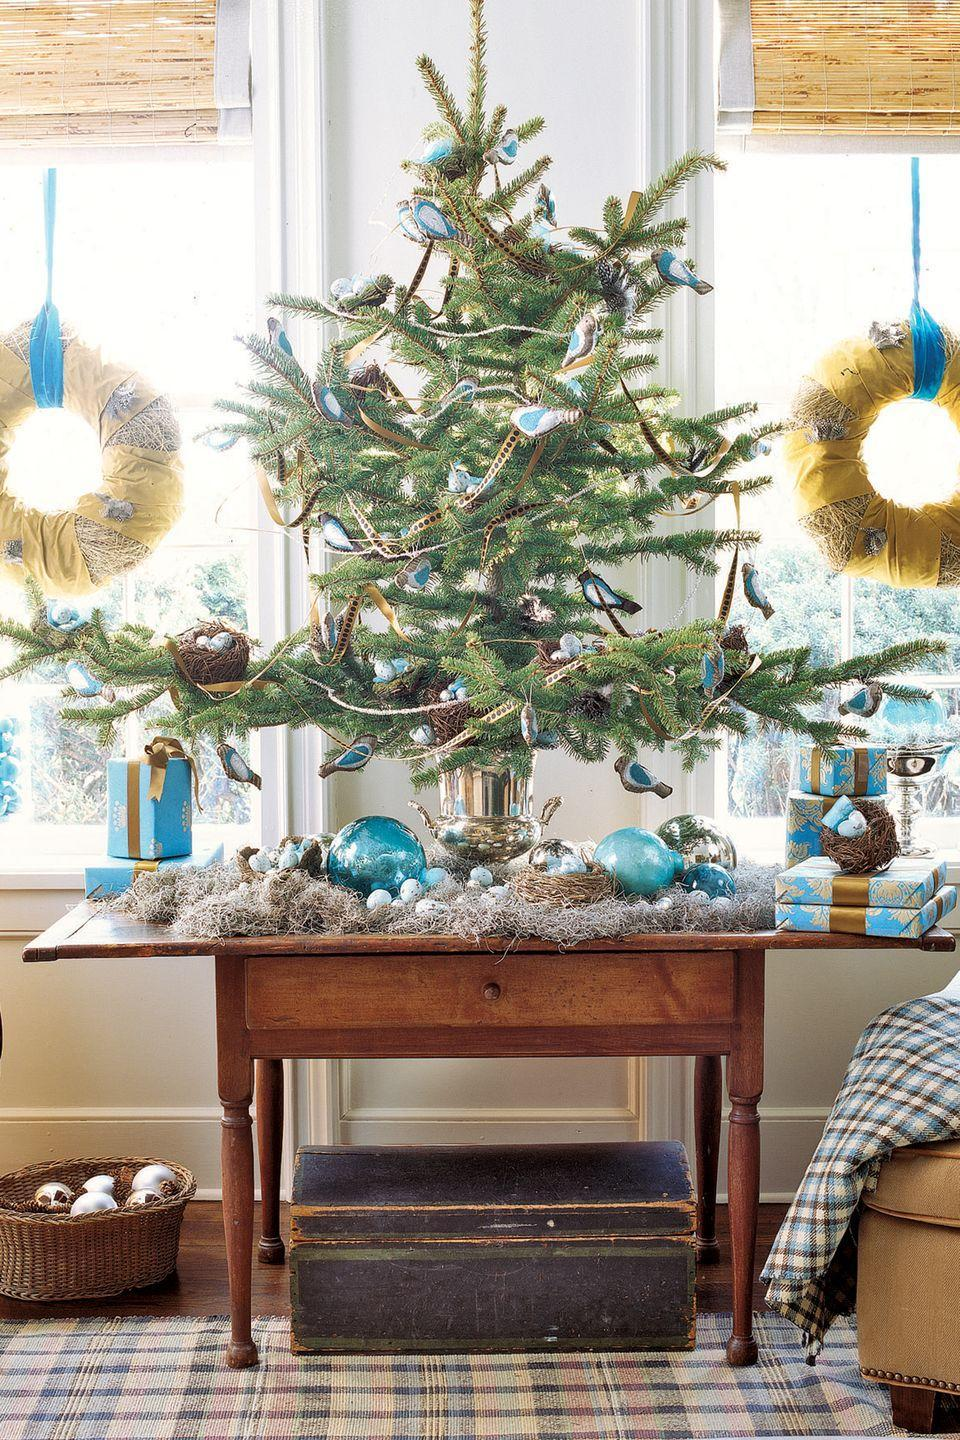 "<p>Vivid blues, bird ornaments, and faux nests give this tabletop tree a fun, outdoorsy feel.</p><p><a class=""link rapid-noclick-resp"" href=""https://www.amazon.com/Old-World-Christmas-Ornaments-Bunting/dp/B0026JQN0Y/?tag=syn-yahoo-20&ascsubtag=%5Bartid%7C10050.g.316%5Bsrc%7Cyahoo-us"" rel=""nofollow noopener"" target=""_blank"" data-ylk=""slk:SHOP BIRD ORNAMENTS"">SHOP BIRD ORNAMENTS</a></p>"